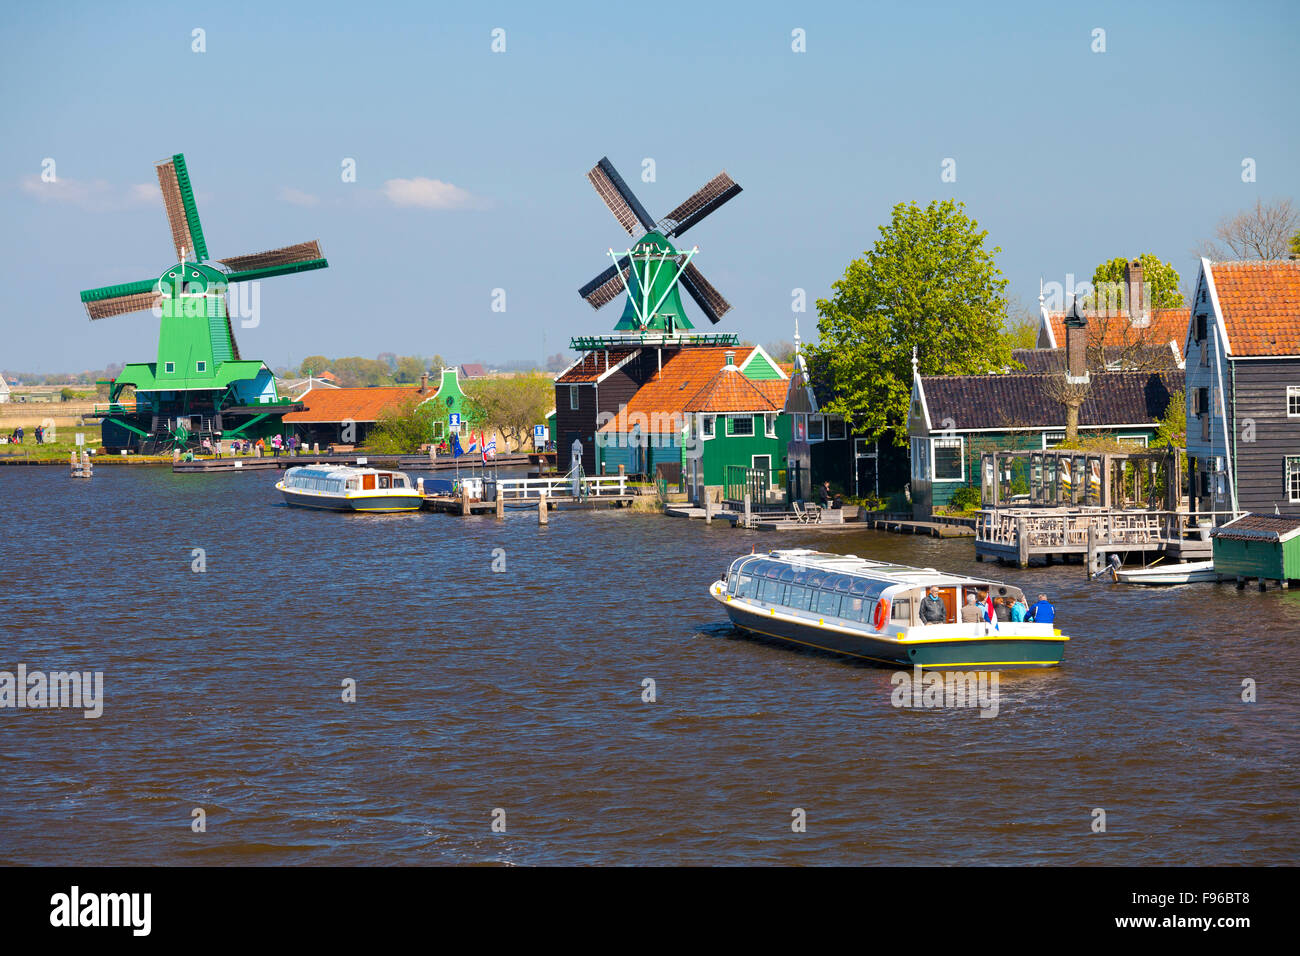 Zaanse Schans is an openair museum north of Amsterdam featuring several restored, working windmills. - Stock Image